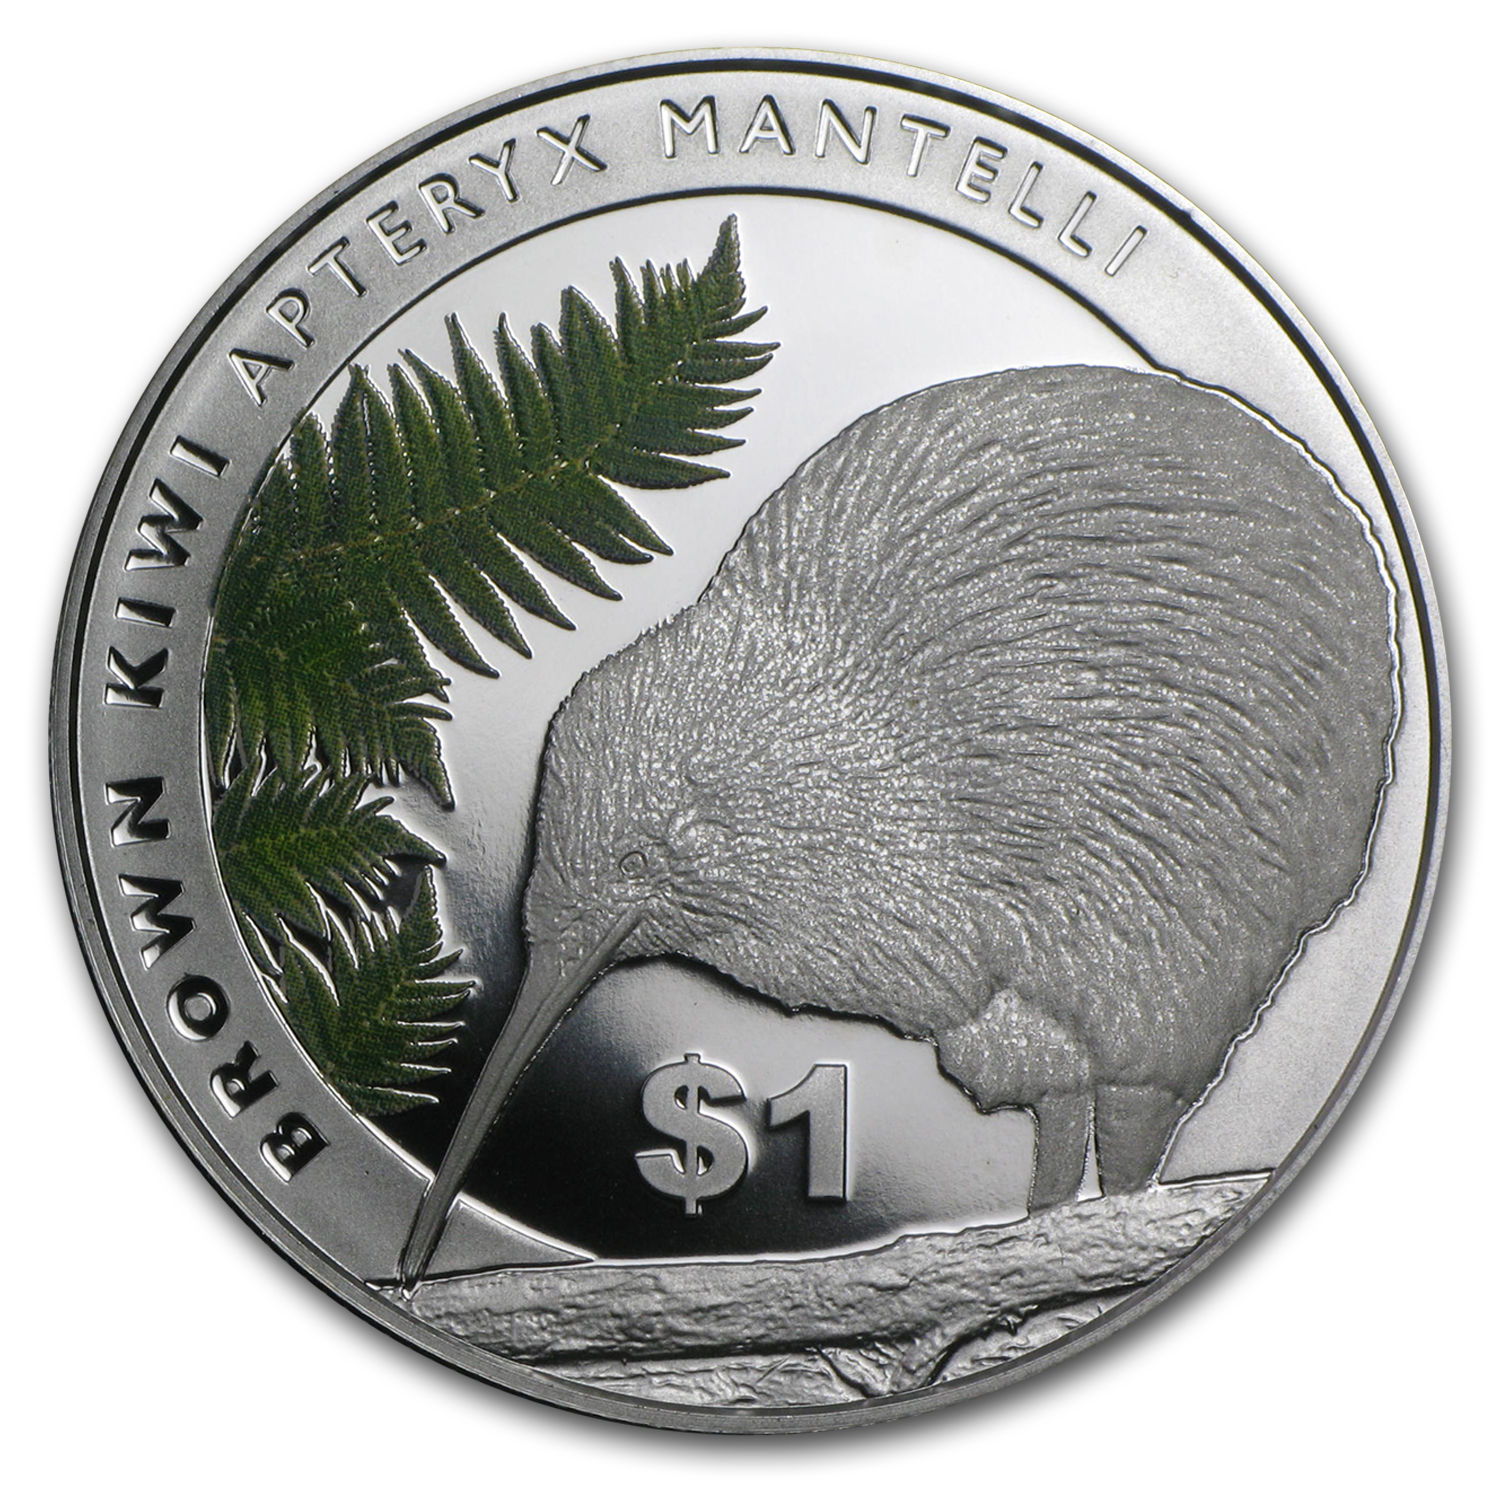 2015 New Zealand 1 oz Silver Treasures $1 Kiwi Proof (Box & COA)